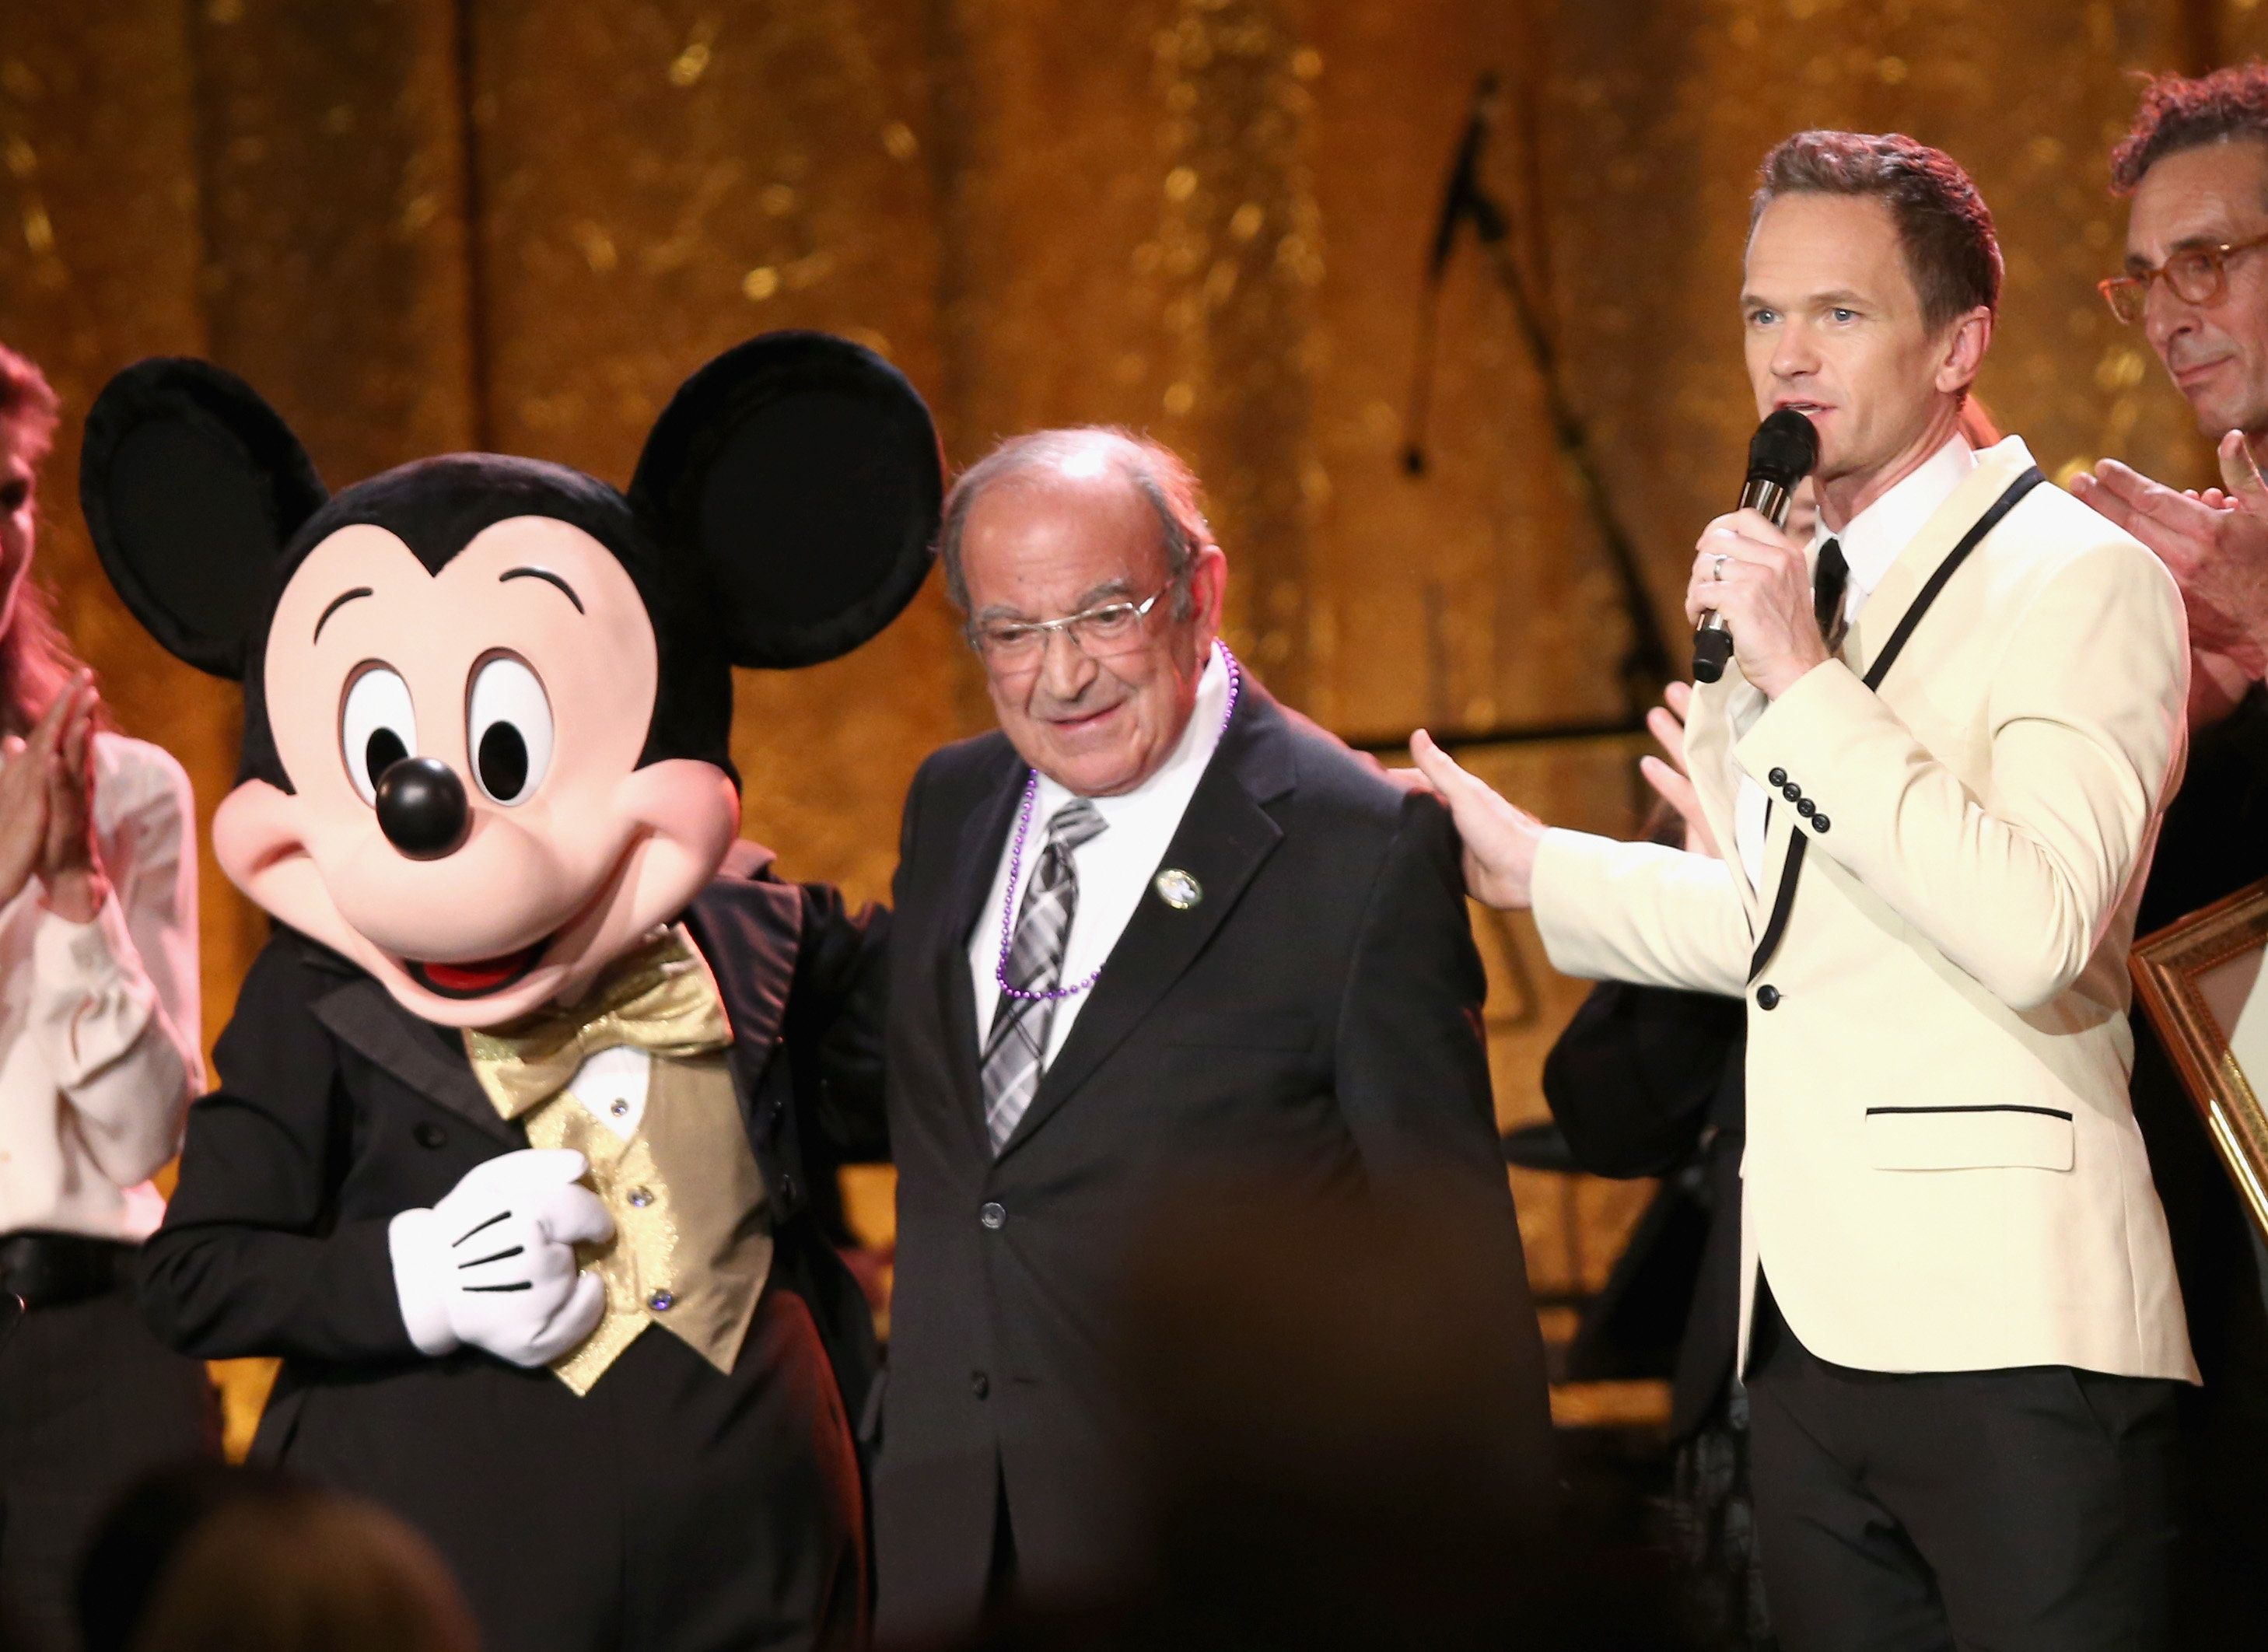 ANAHEIM, CA - NOVEMBER 01:  Recipient of Diane Disney Miller Lifetime Achievement Award, Marty Sklar (L) and Master of Ceremonies, Neil Patrick Harris speak onstage at The Walt Disney Family Museum's 2nd Annual Gala at Disney's Grand Californian Hotel & Spa at The Disneyland Resort on November 1, 2016 in Anaheim, California.  (Photo by Joe Scarnici/Getty Images for The Walt Disney Family Museum)